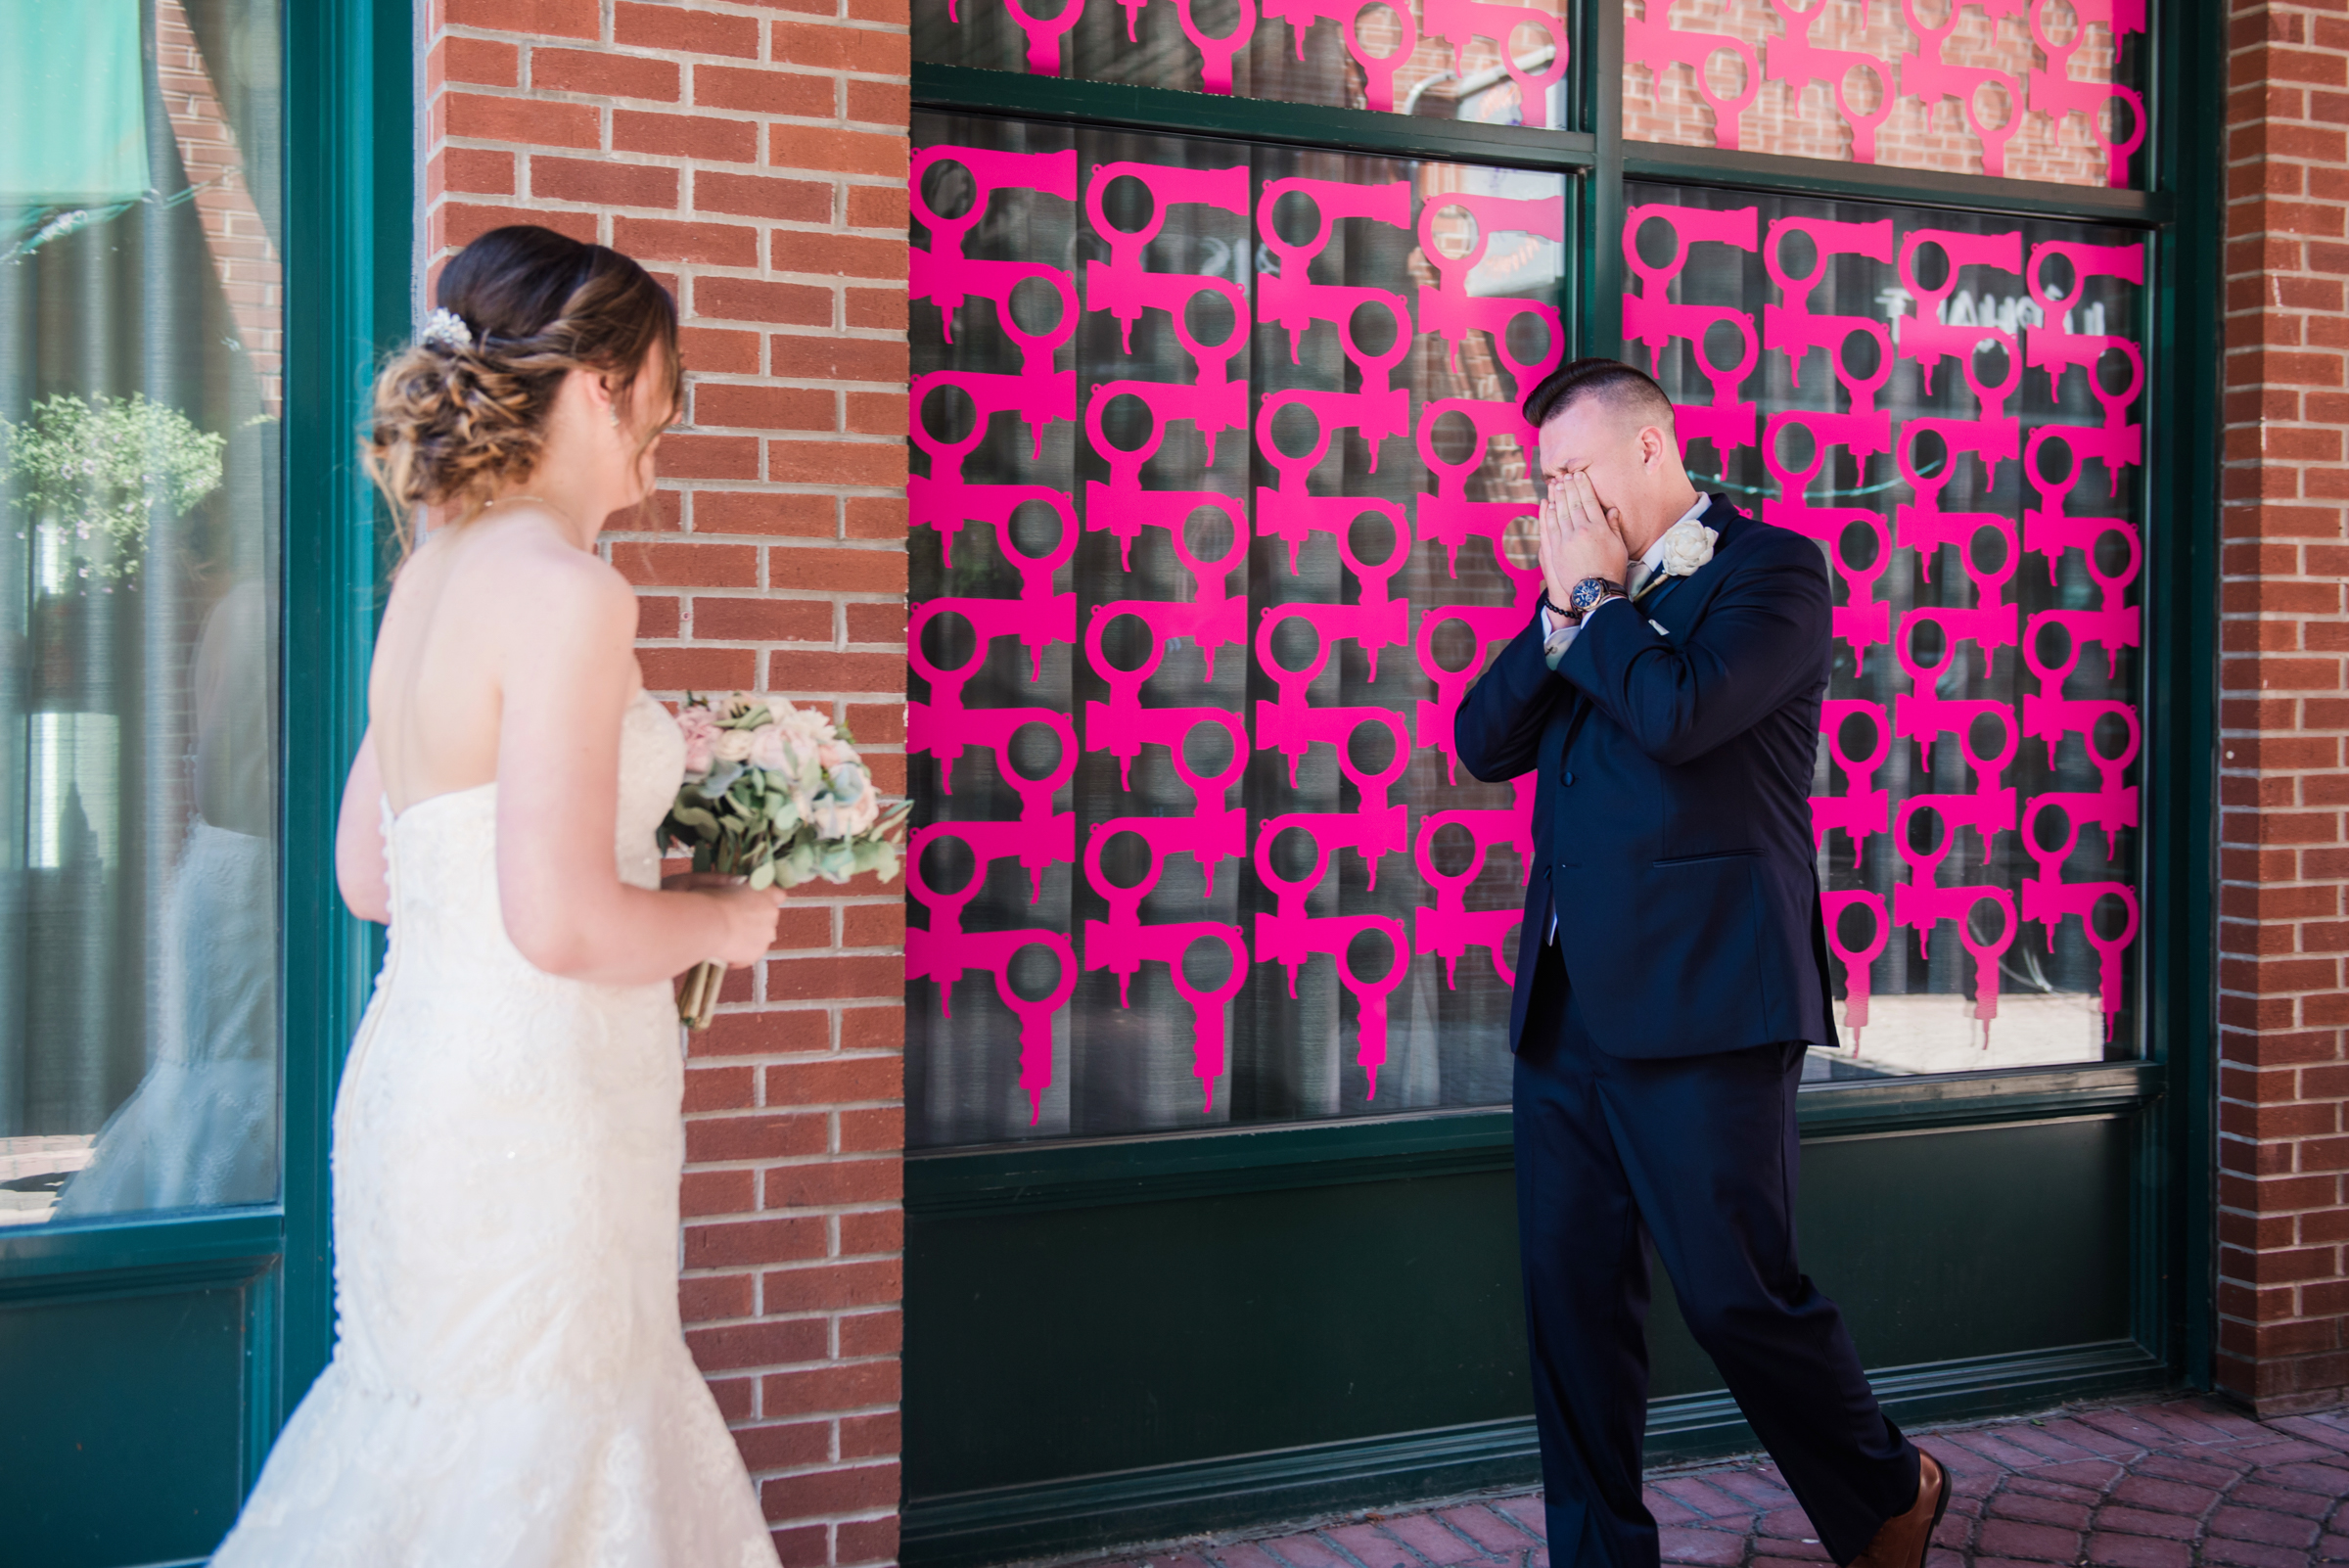 JILL_STUDIO_Wedding_JILL_STUDIO_Rochester_NY_Photographer_6-DSC_2190.jpg